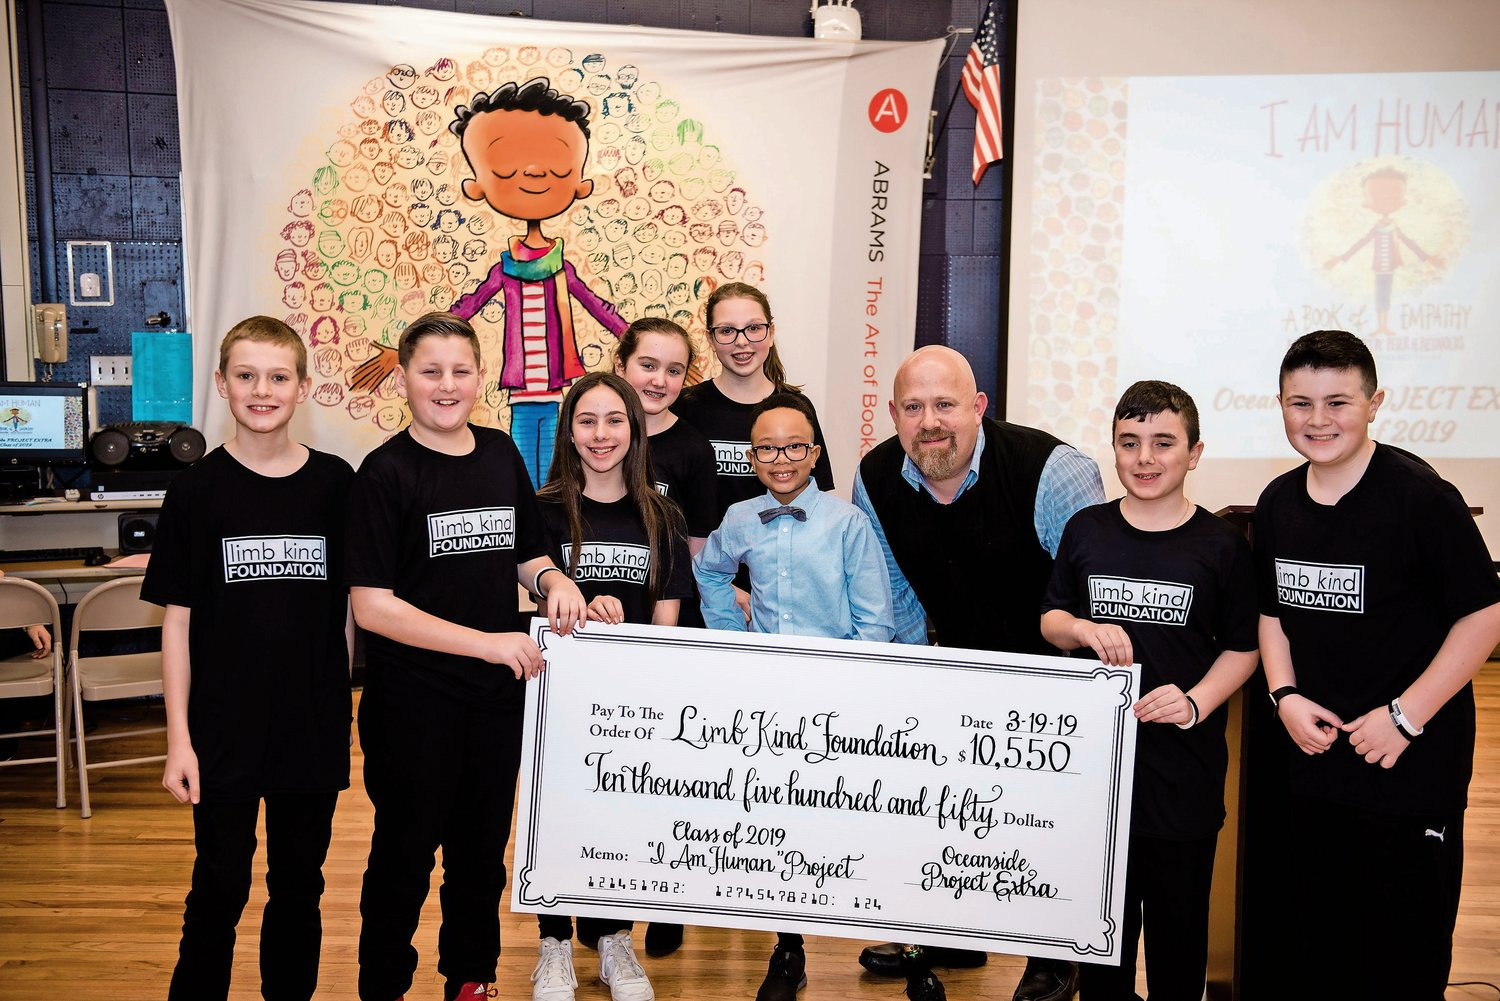 Project Extra students presented a check for $10,550 to the Limb Kind Foundation, which donates prosthetics to children with limb loss domestically and internationally.